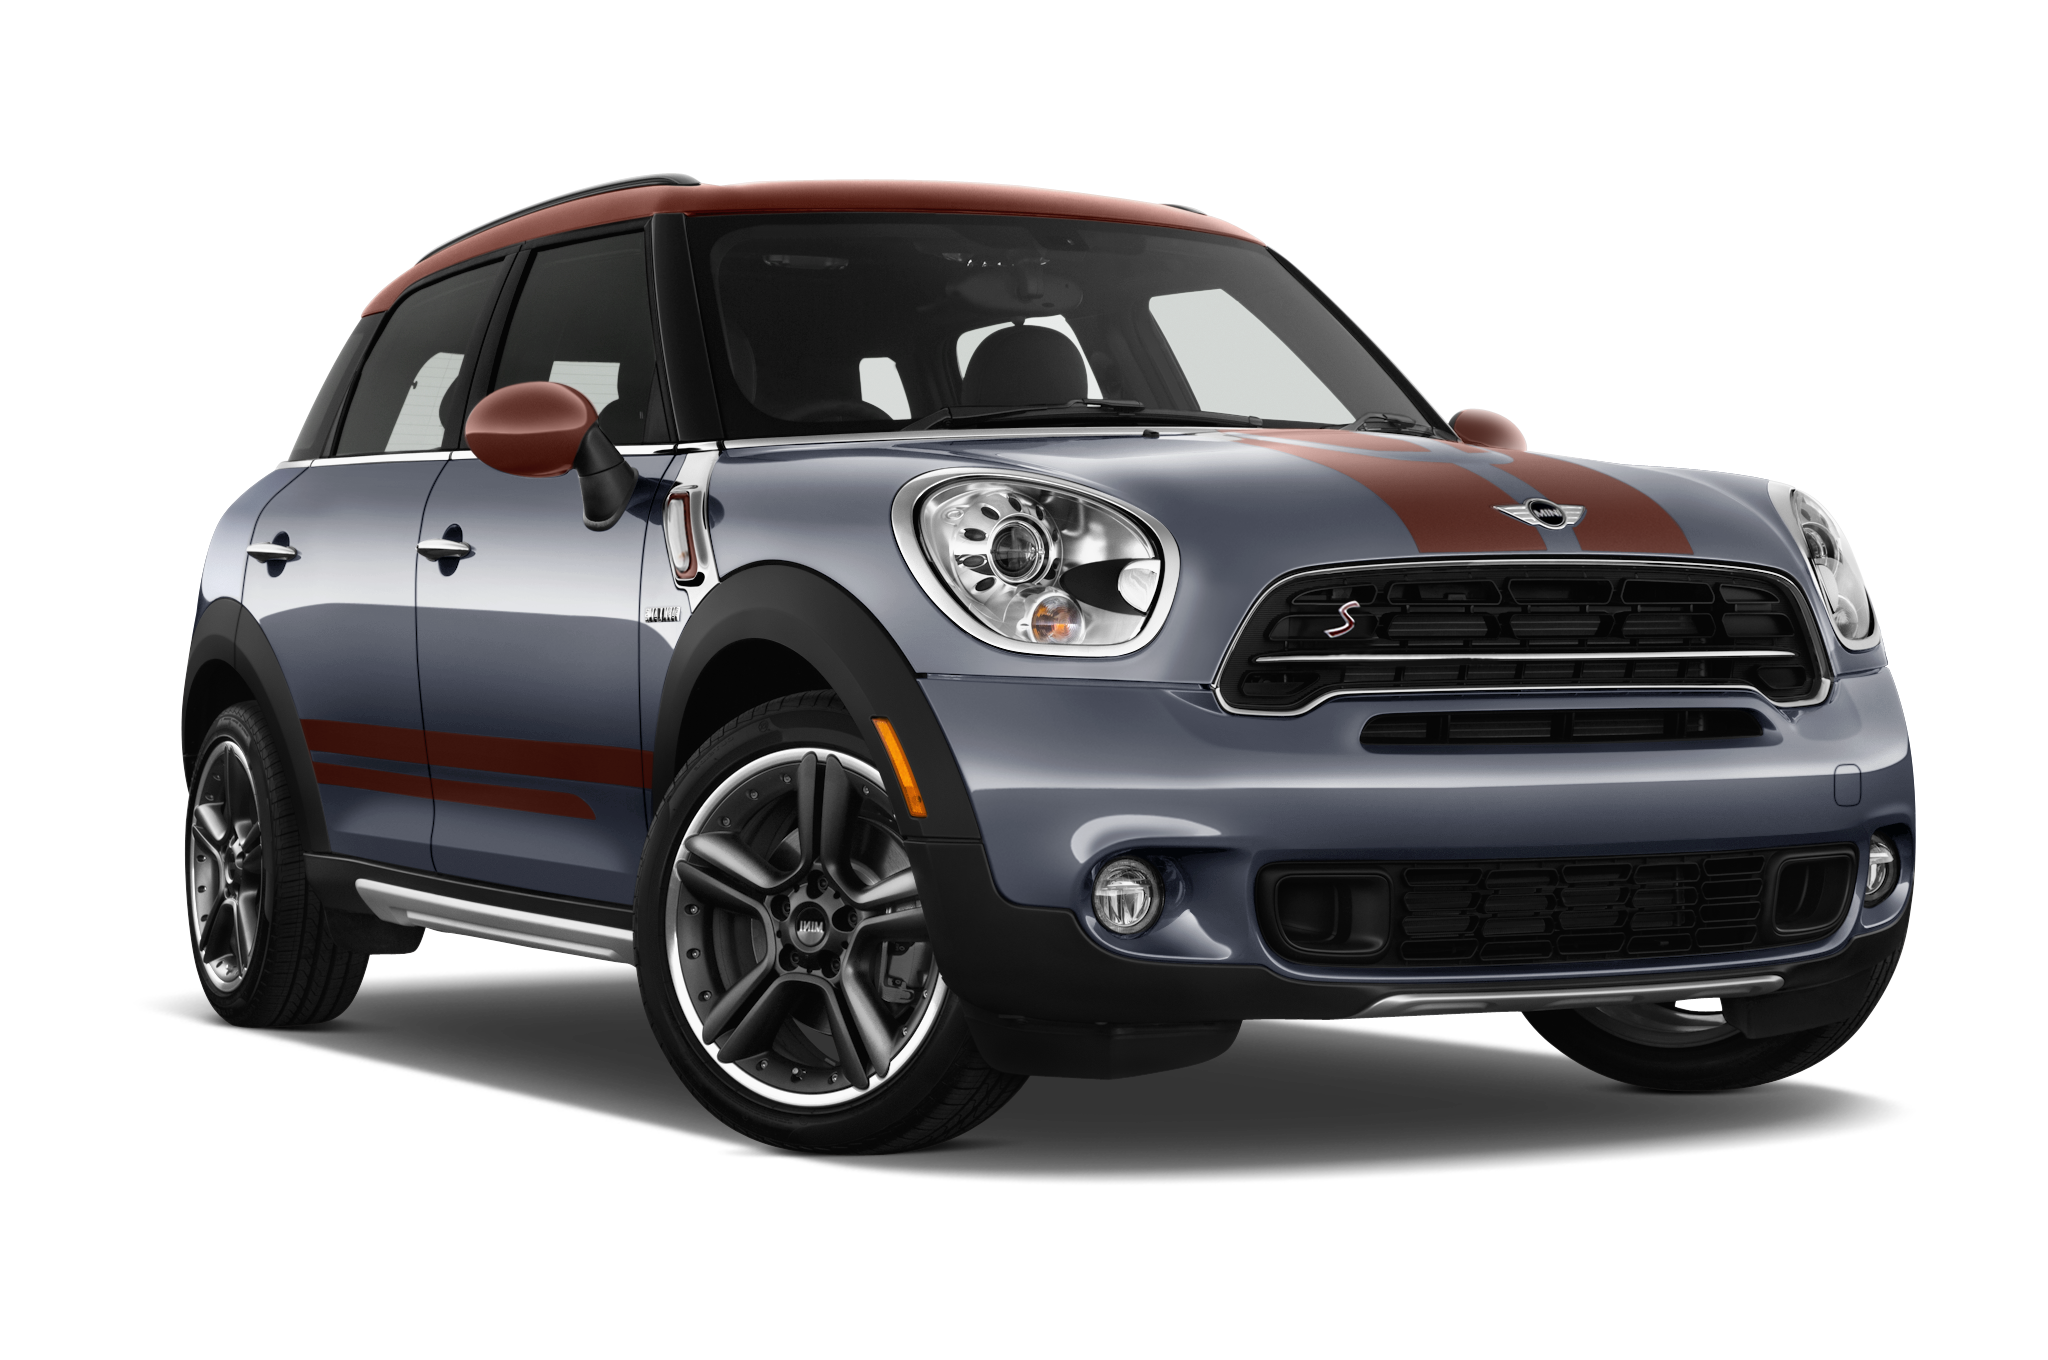 mini countryman vehicle review arval uk ltd. Black Bedroom Furniture Sets. Home Design Ideas